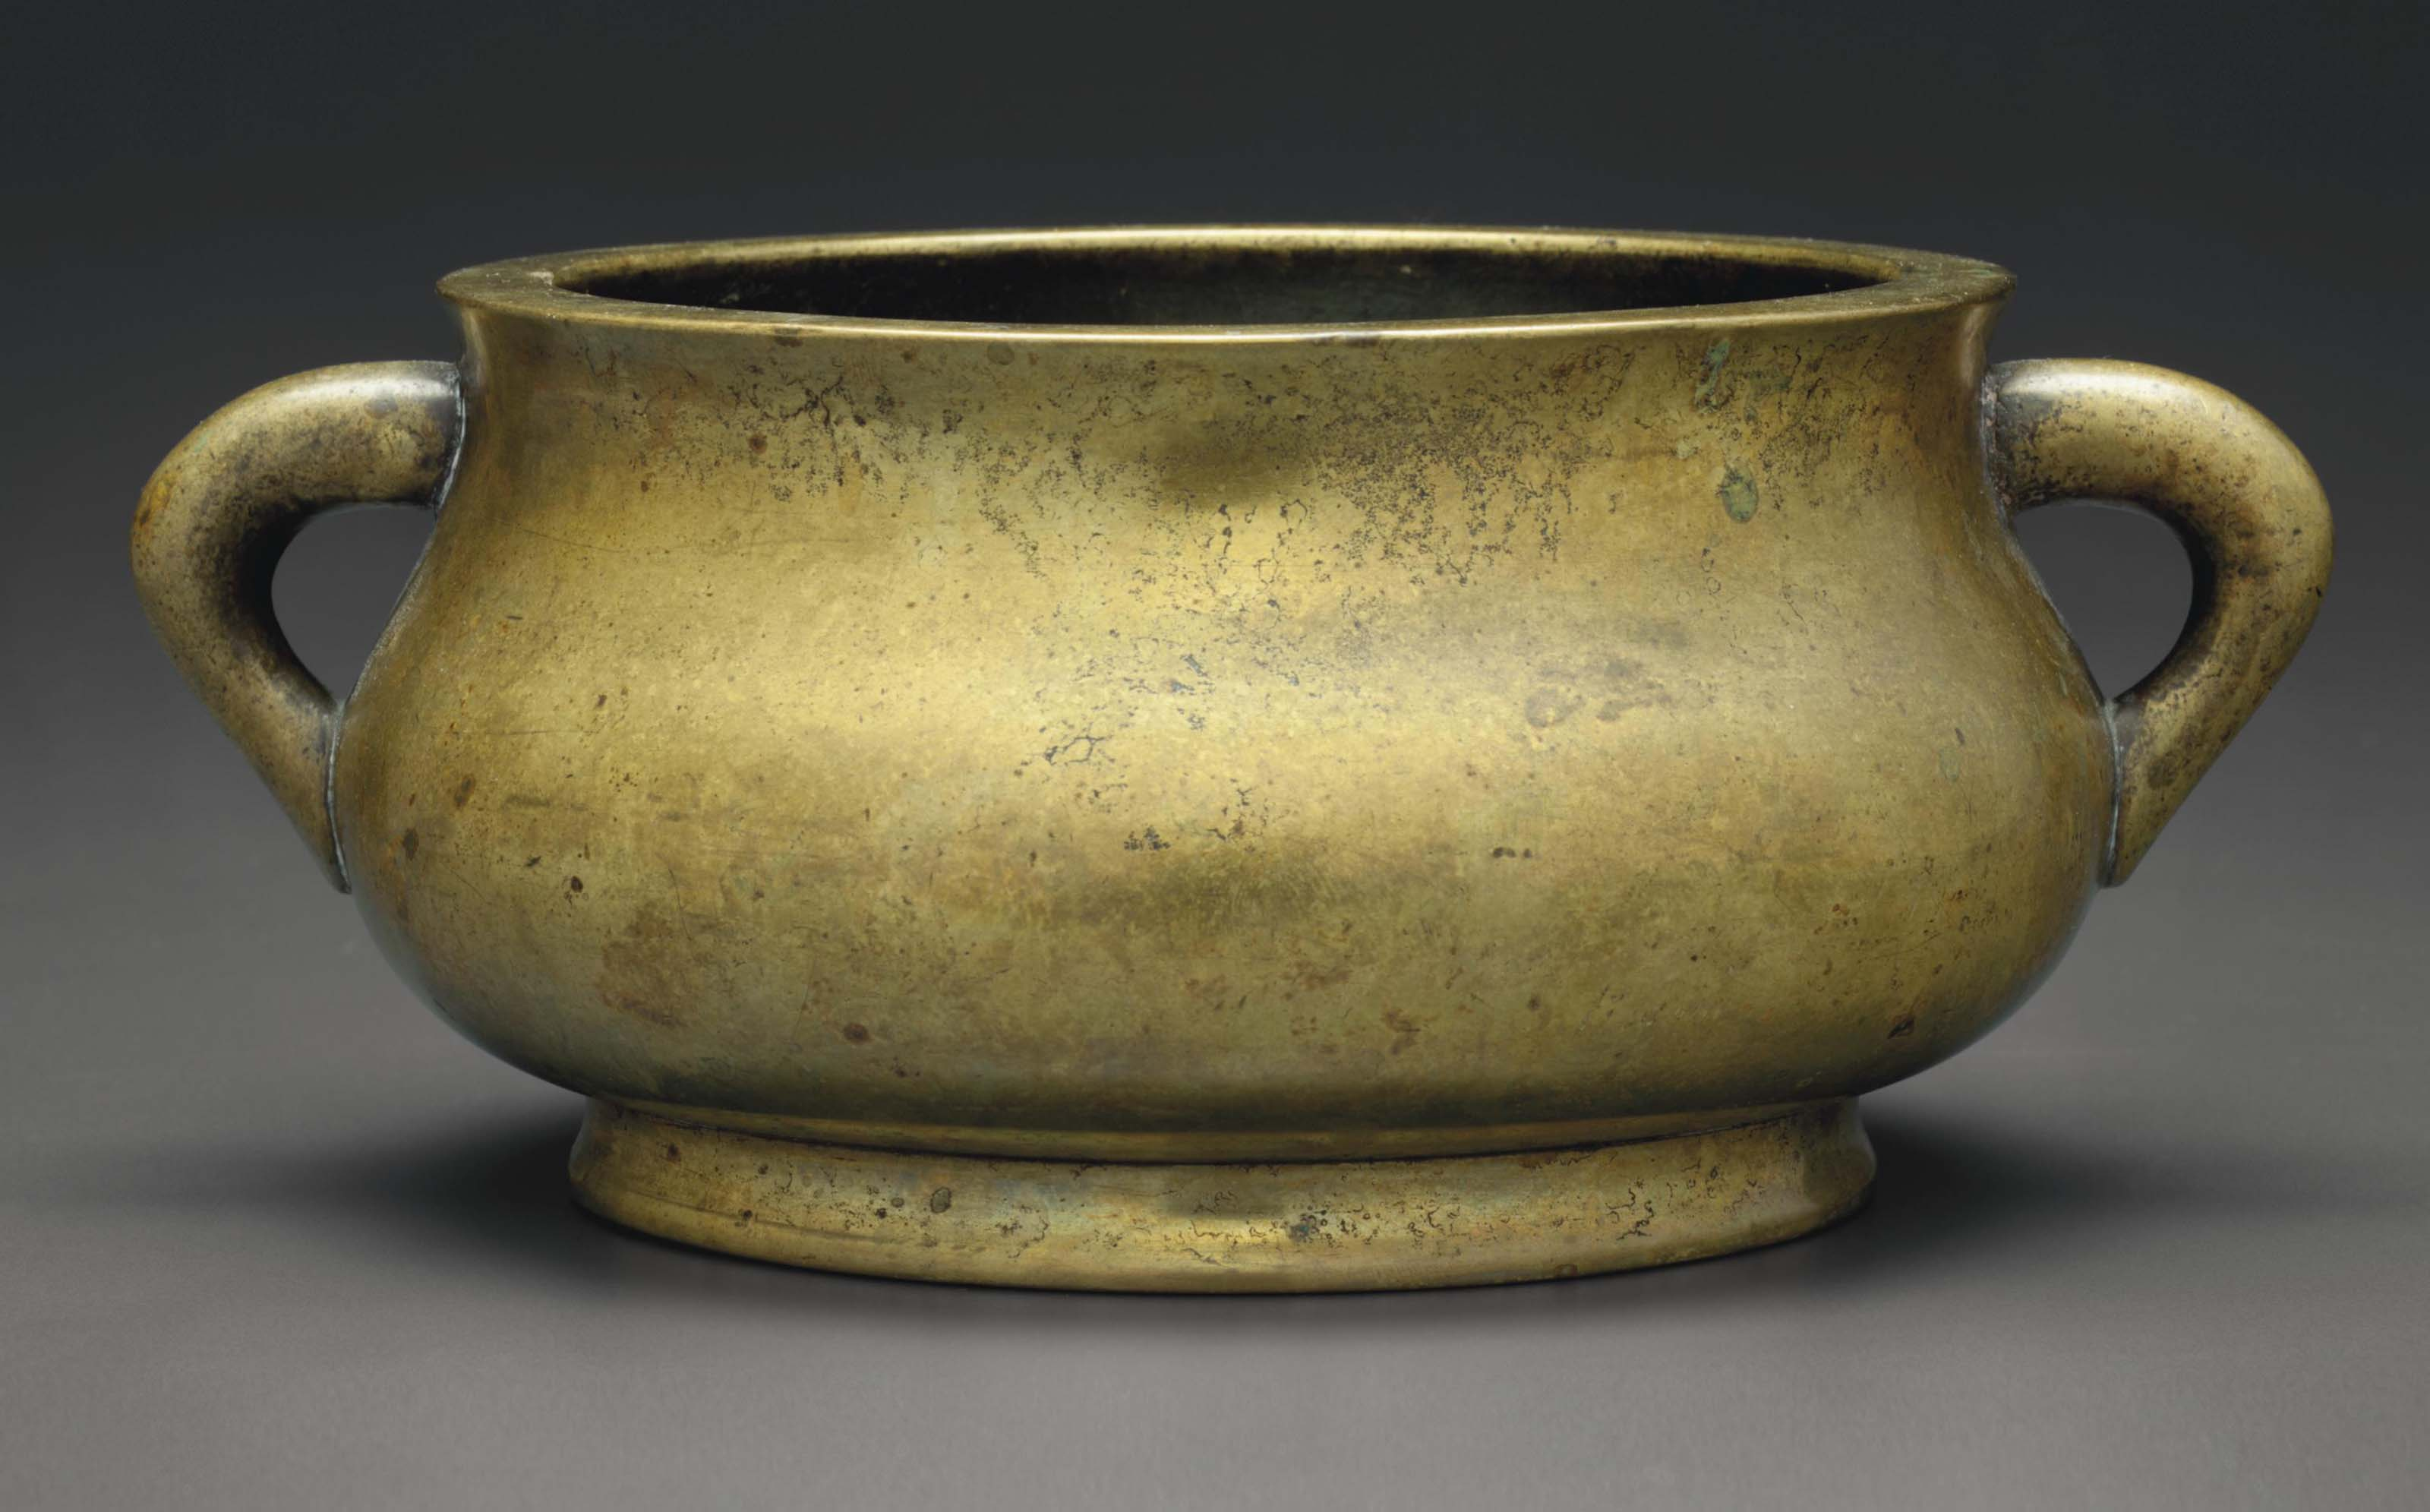 A GILT-BRONZE CENSER